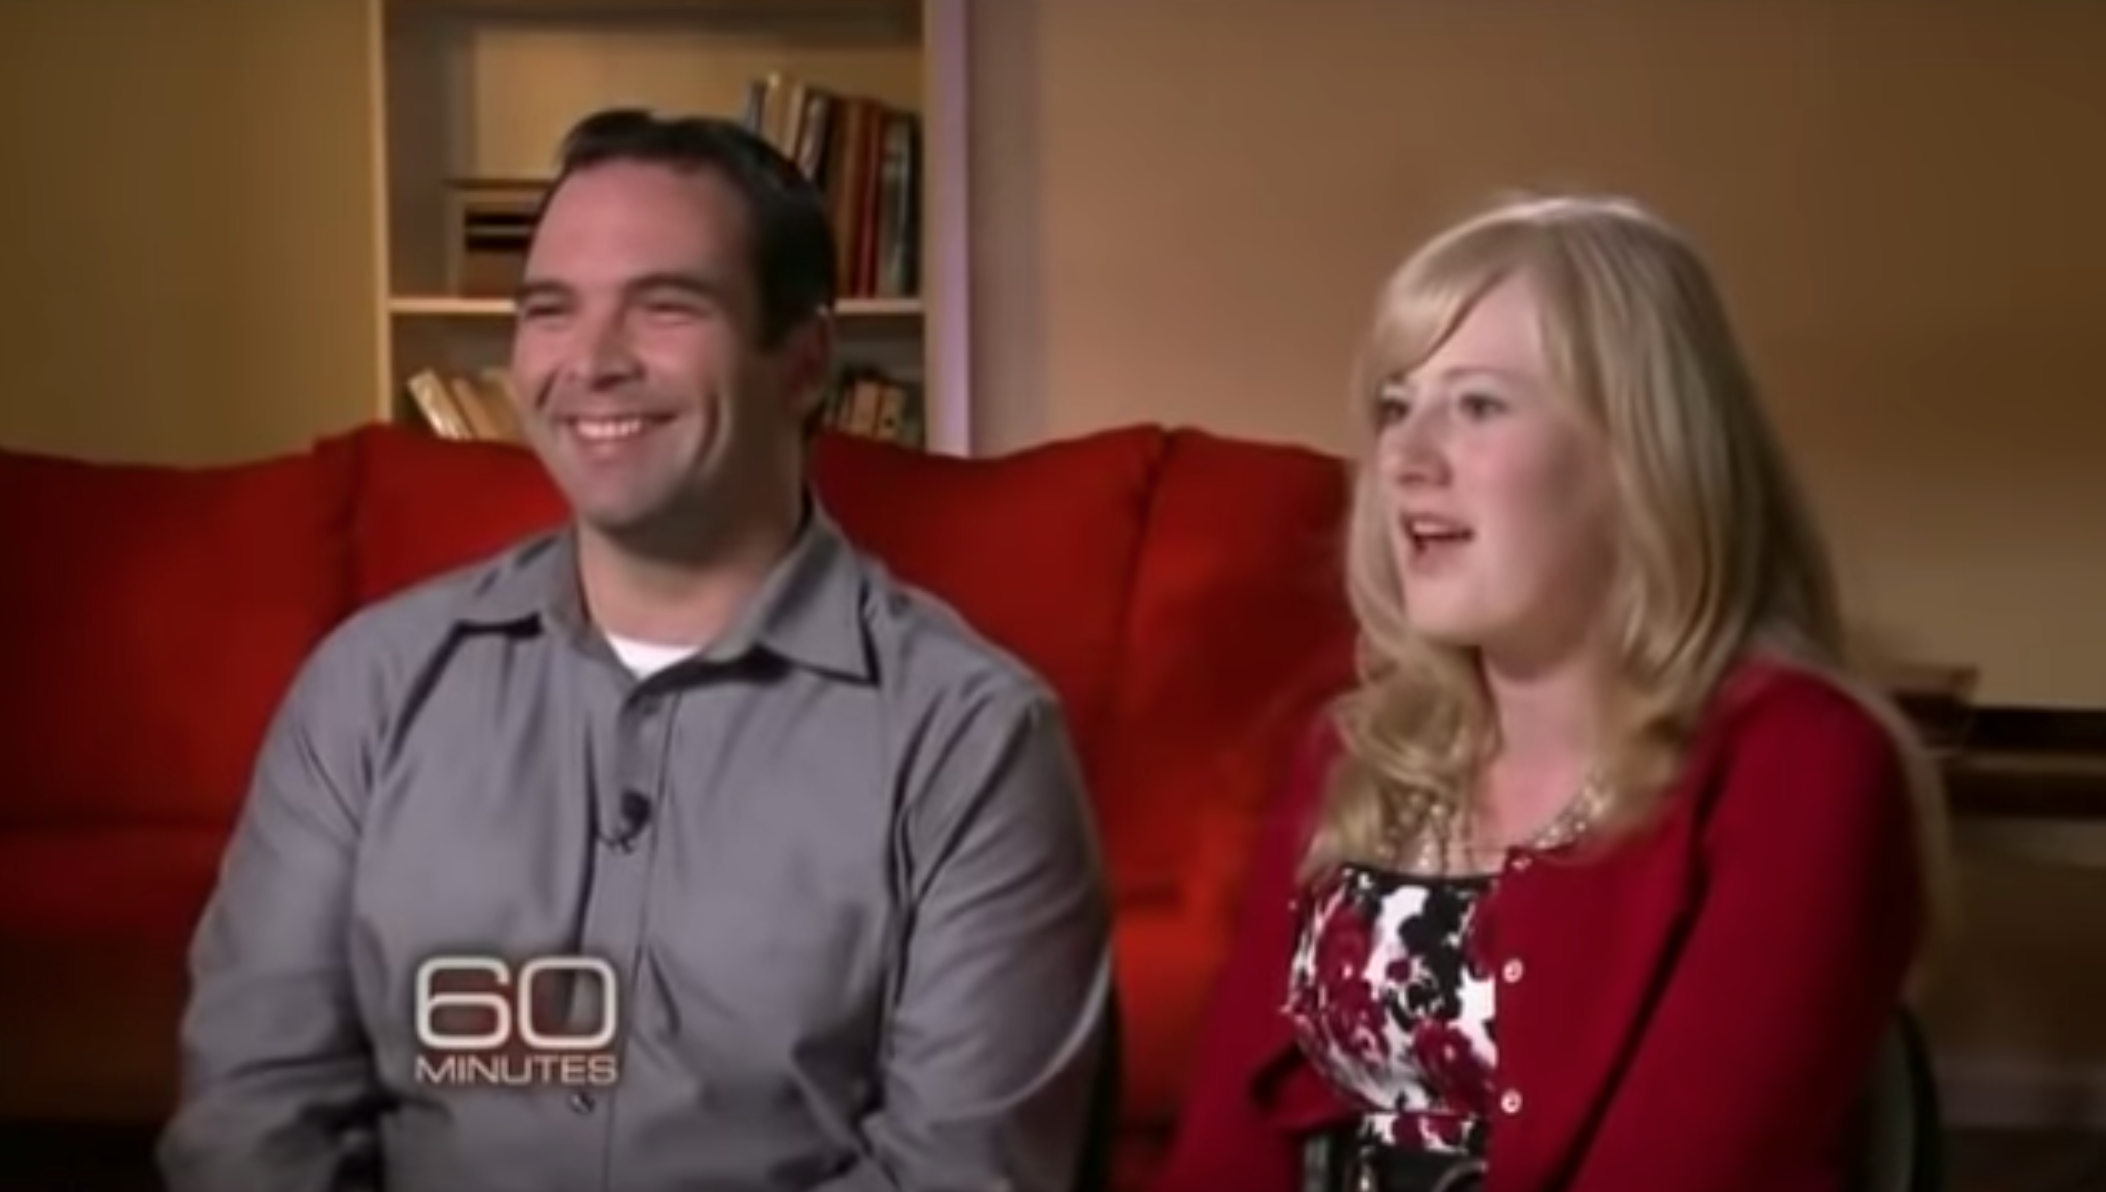 Kristine and Michael Barnett are shown here during their appearance on 60 Minutes (YouTube/60 Minutes)